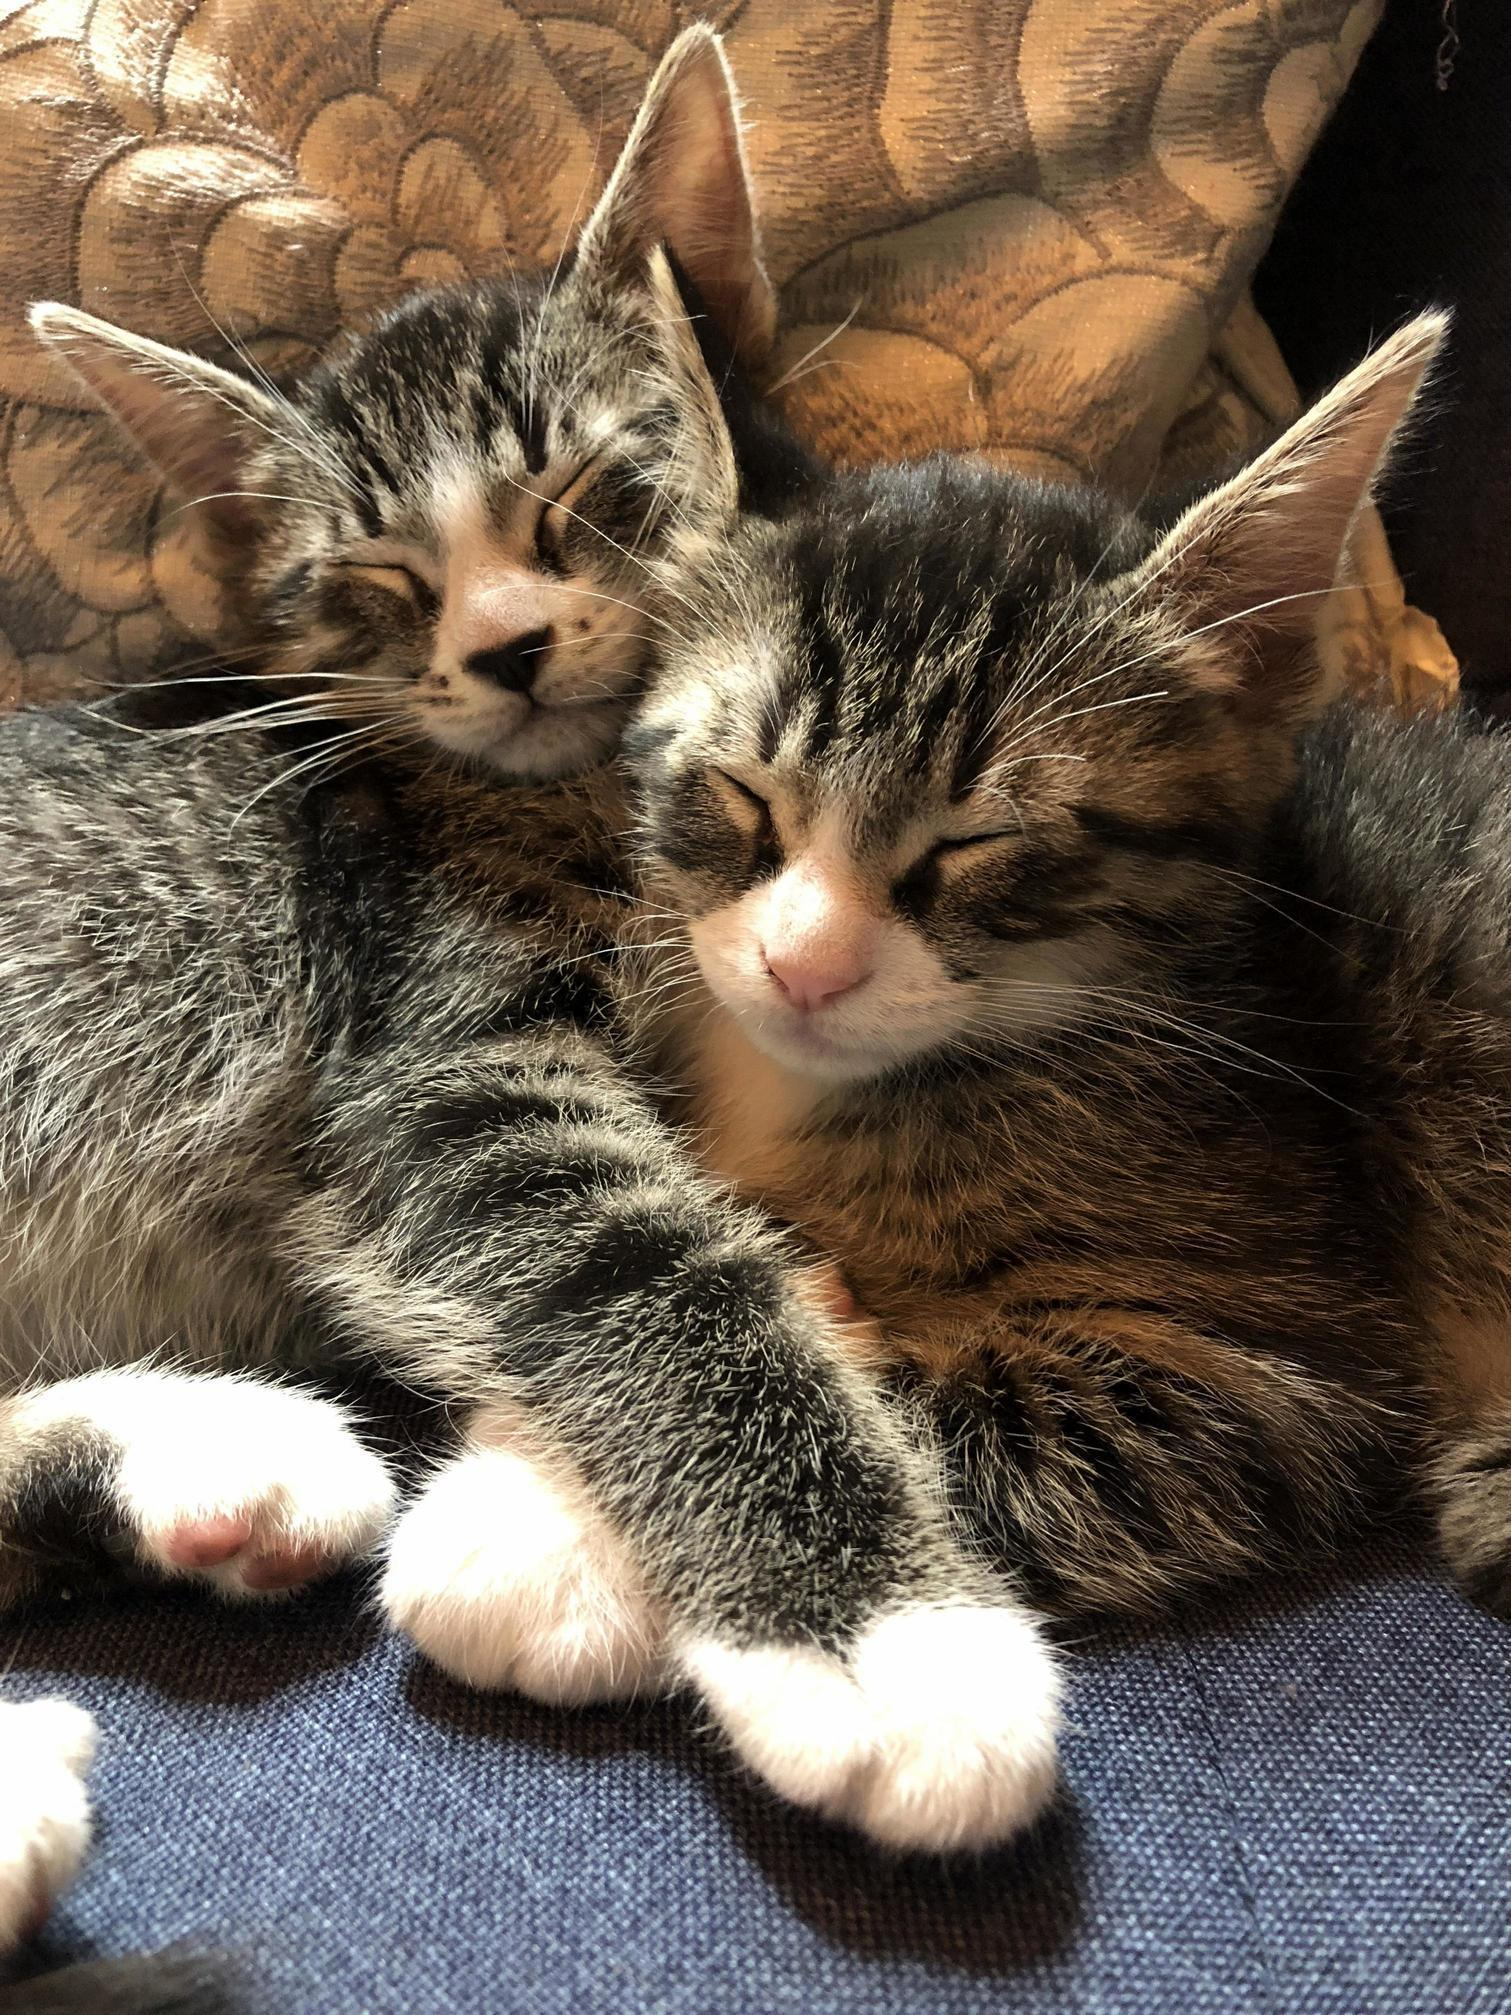 Ive found the bonded pair in my group of fosters captain holt and sarge